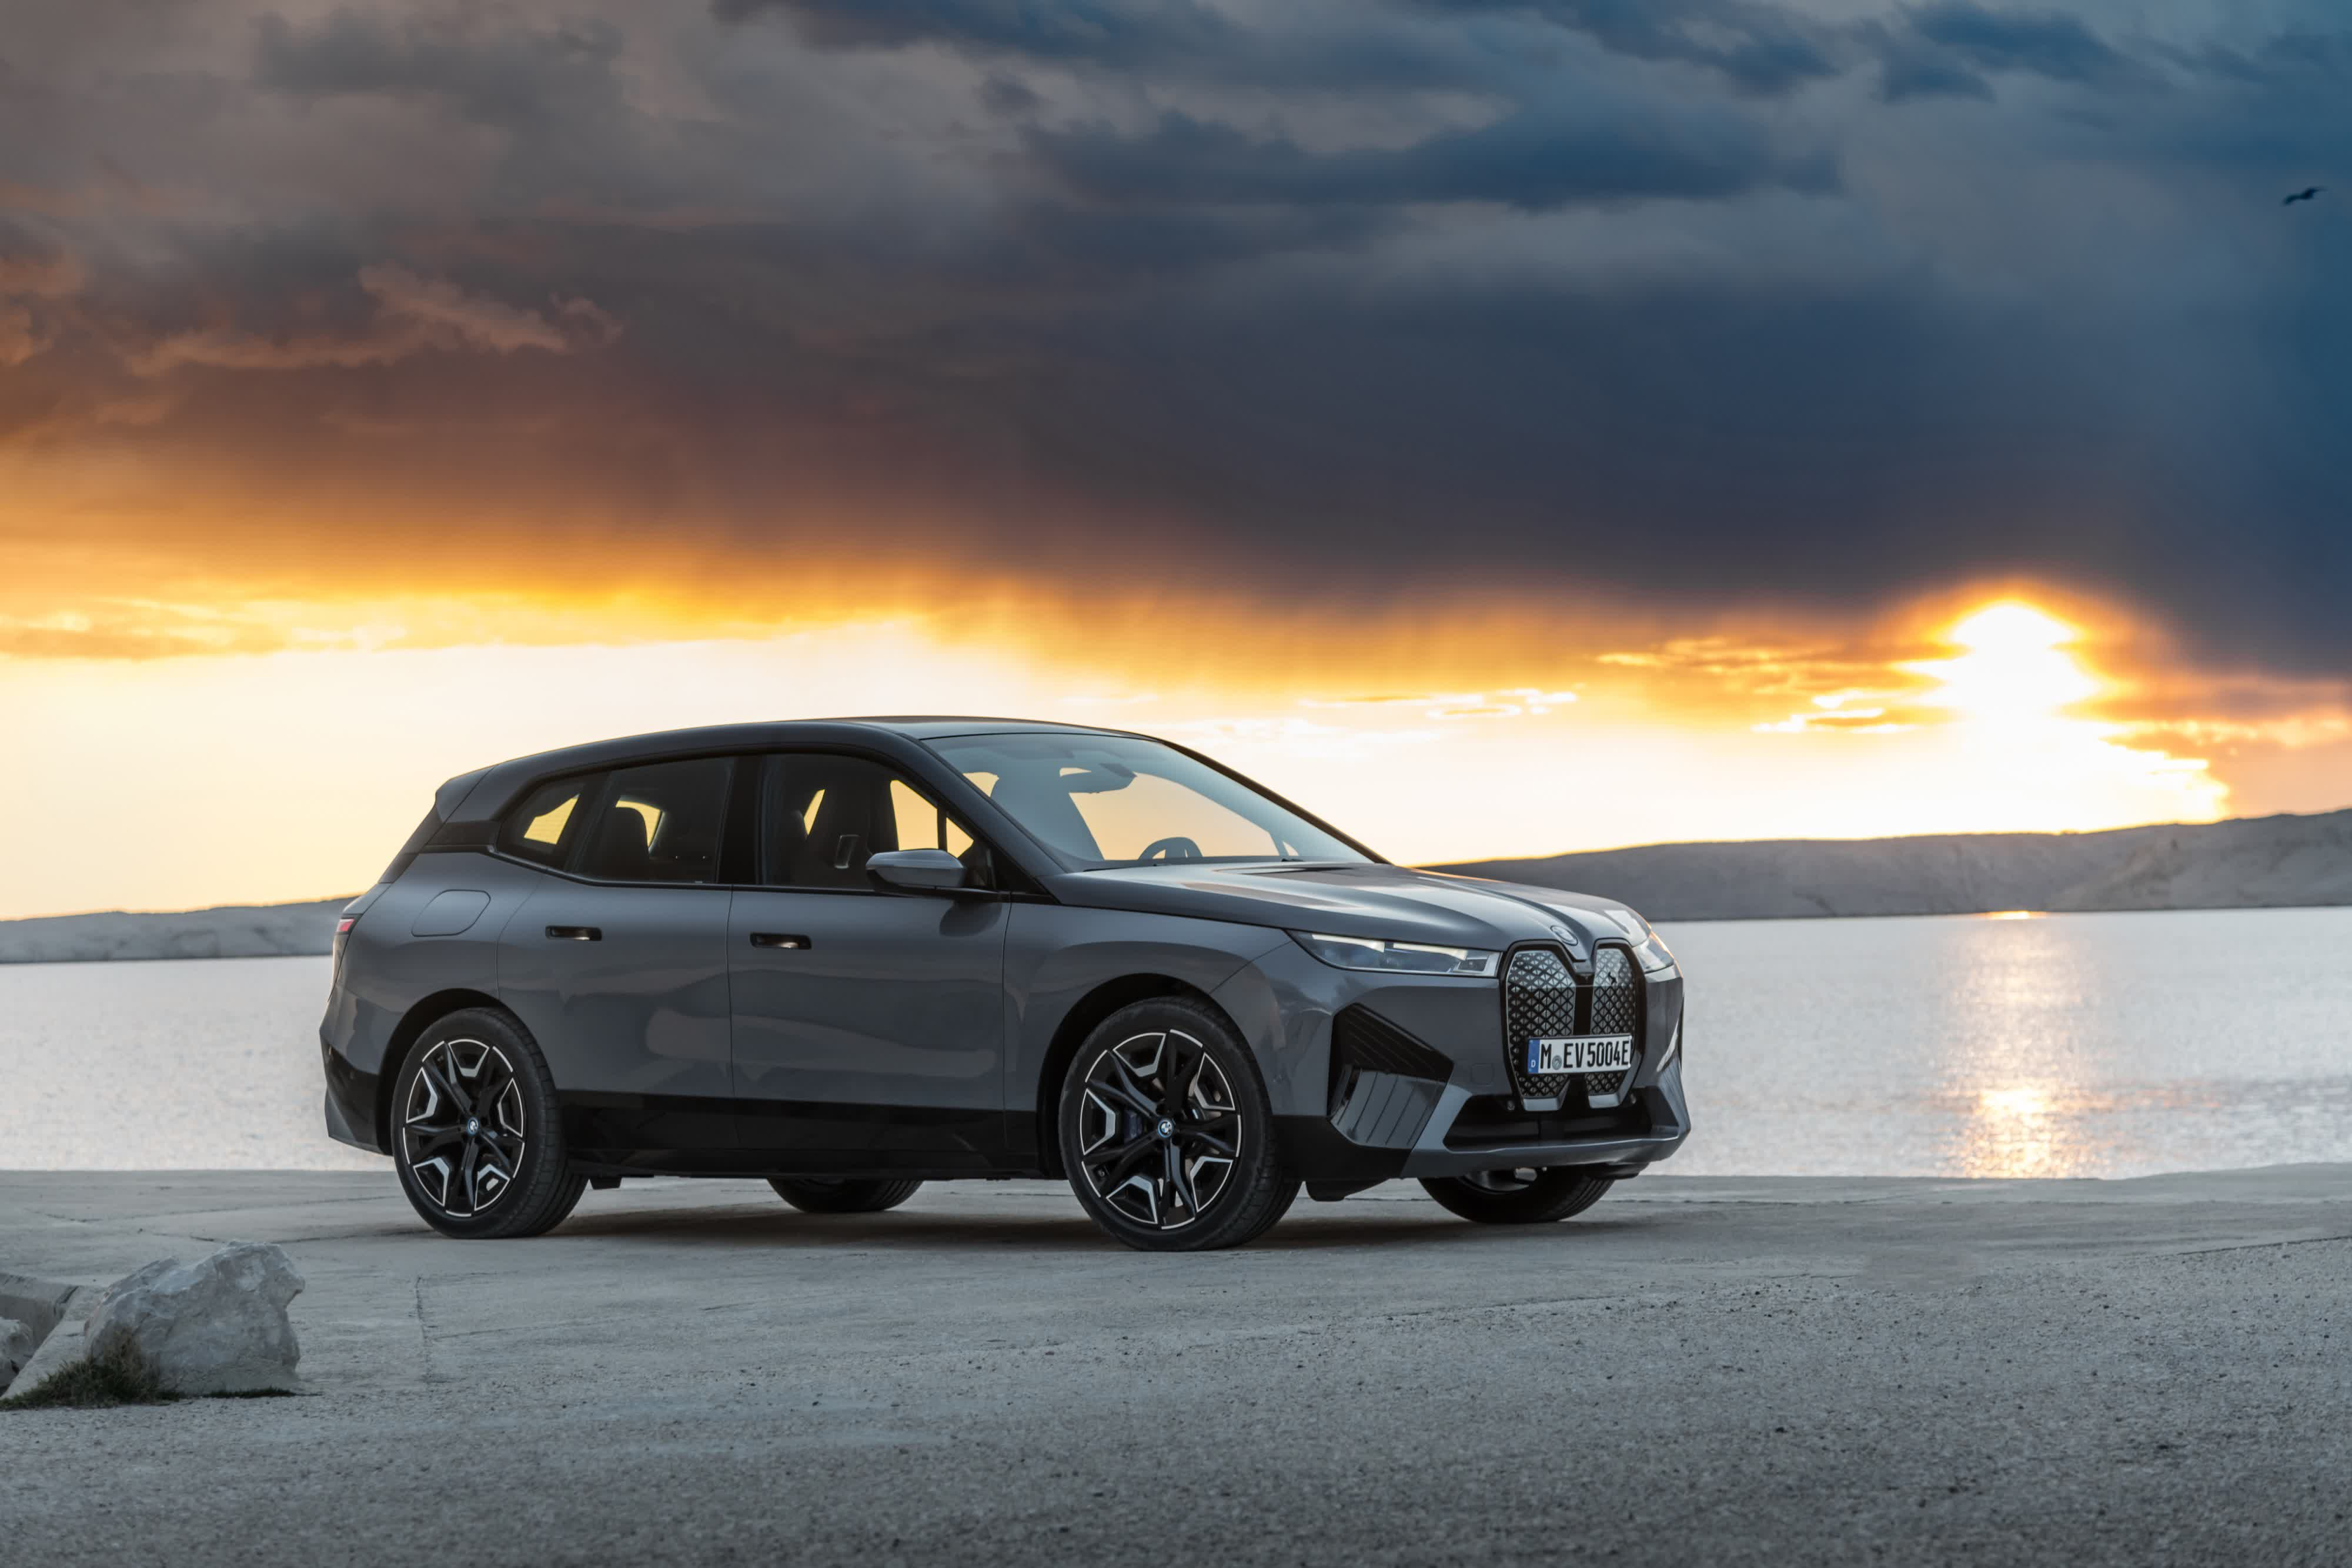 BMW i4 sedan and BMW iX crossover expand pure electric offerings to a broader audience